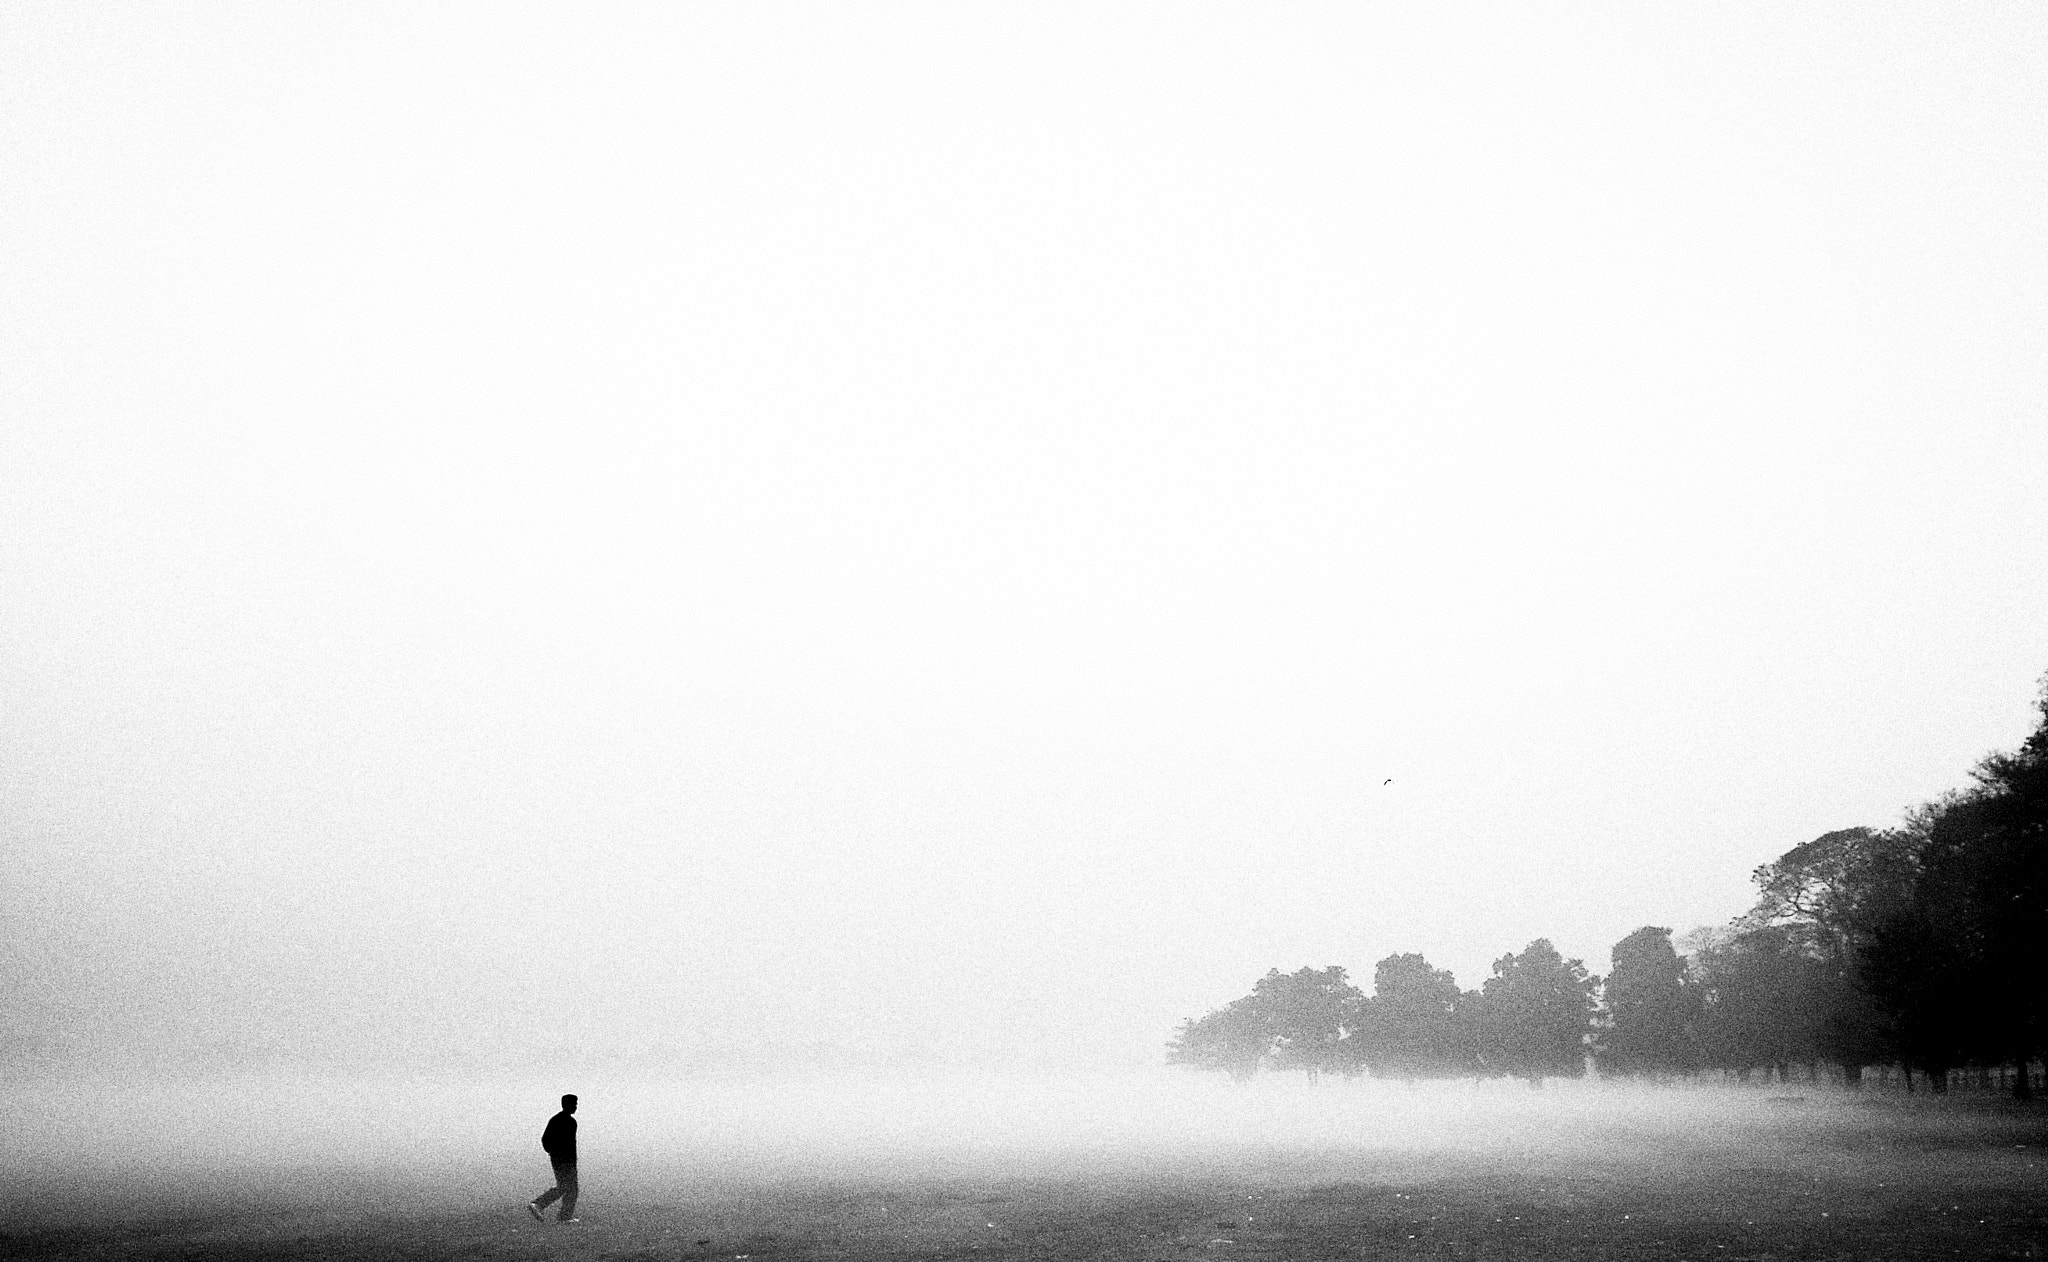 Photograph Alone by Atish Sen on 500px